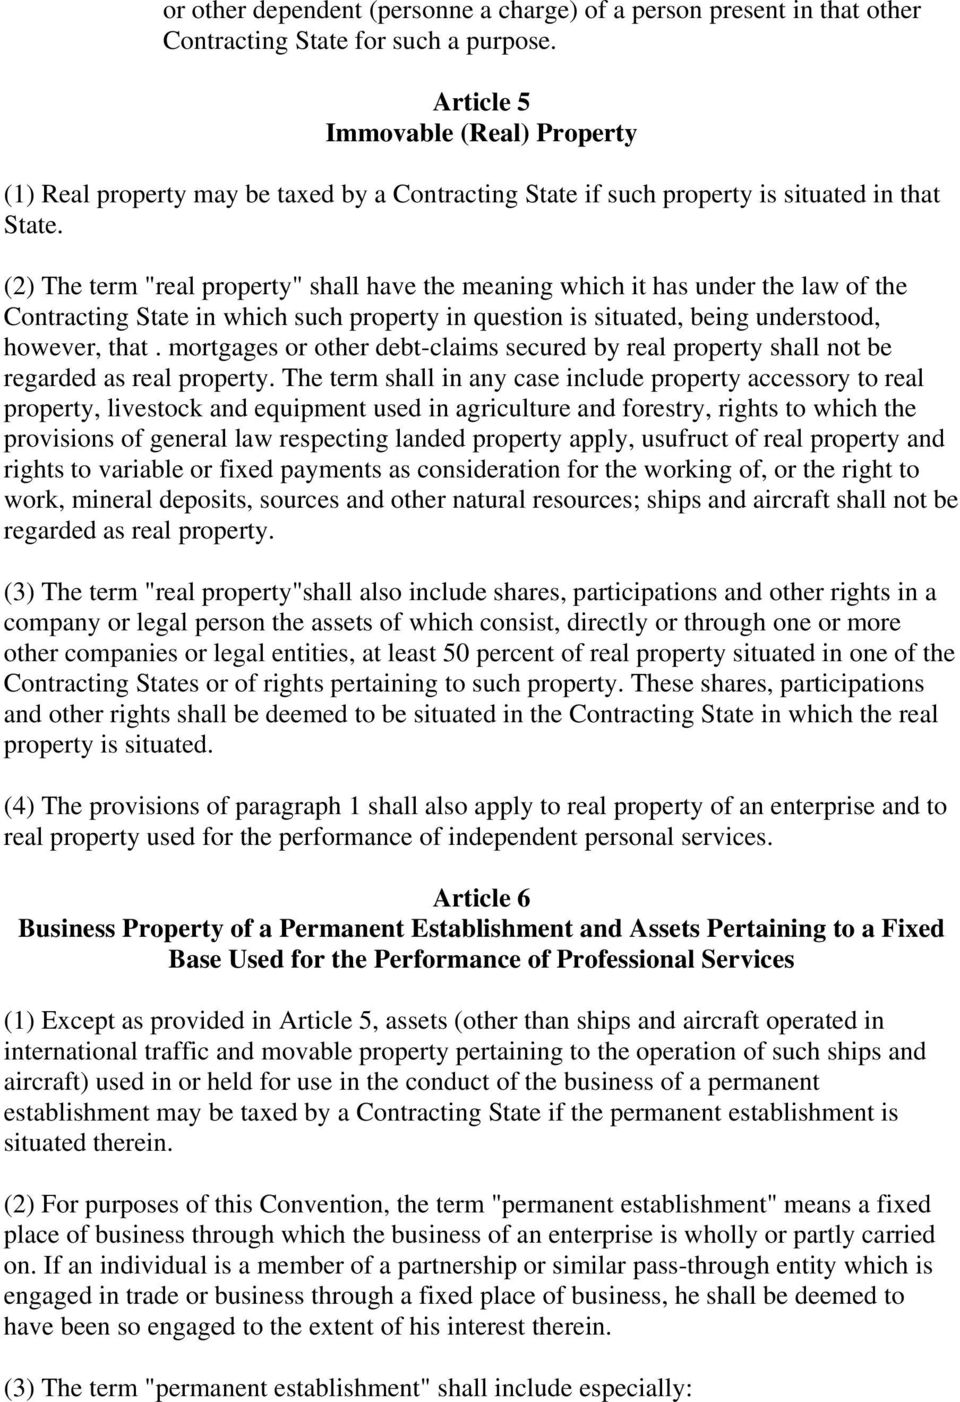 "(2) The term ""real property"" shall have the meaning which it has under the law of the Contracting State in which such property in question is situated, being understood, however, that."